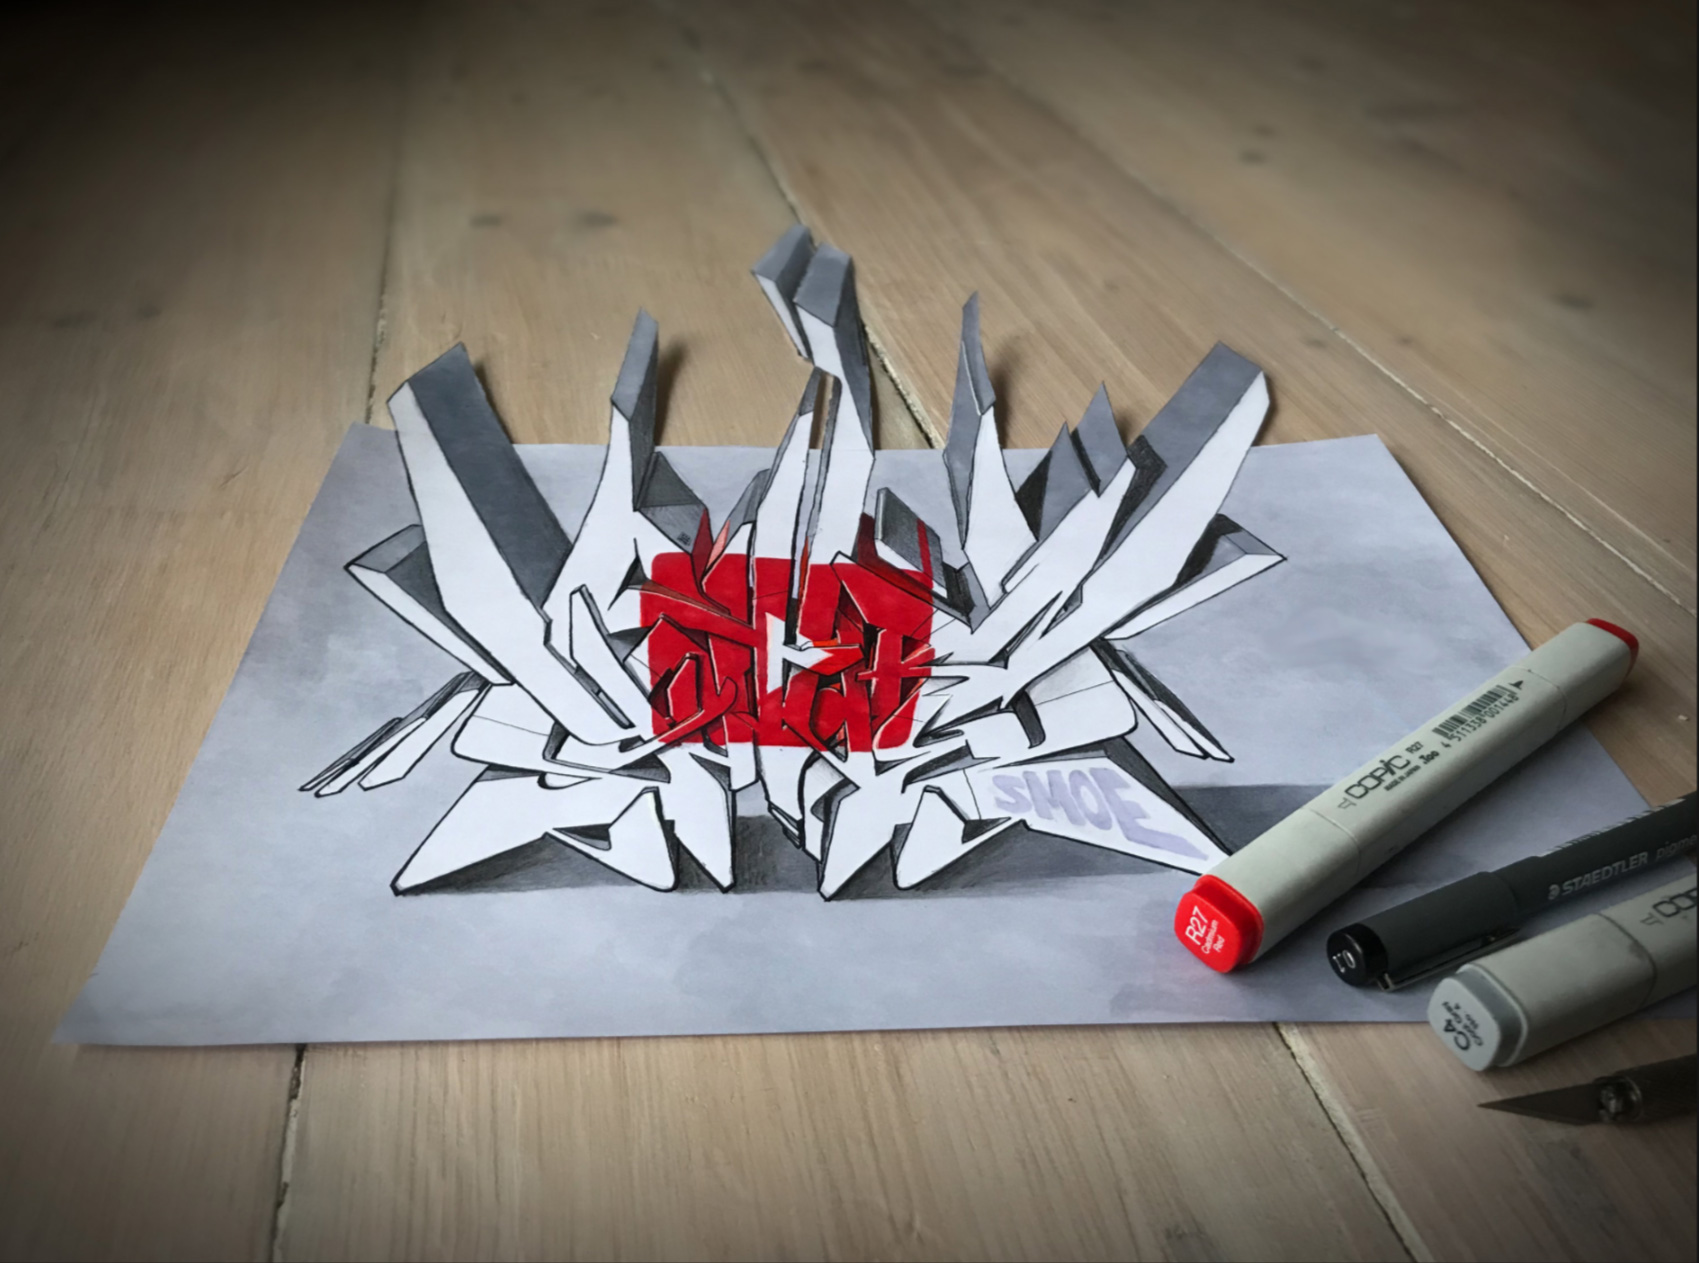 20 Awesome Graffiti Sketches The Art Of Graffiti Sketching